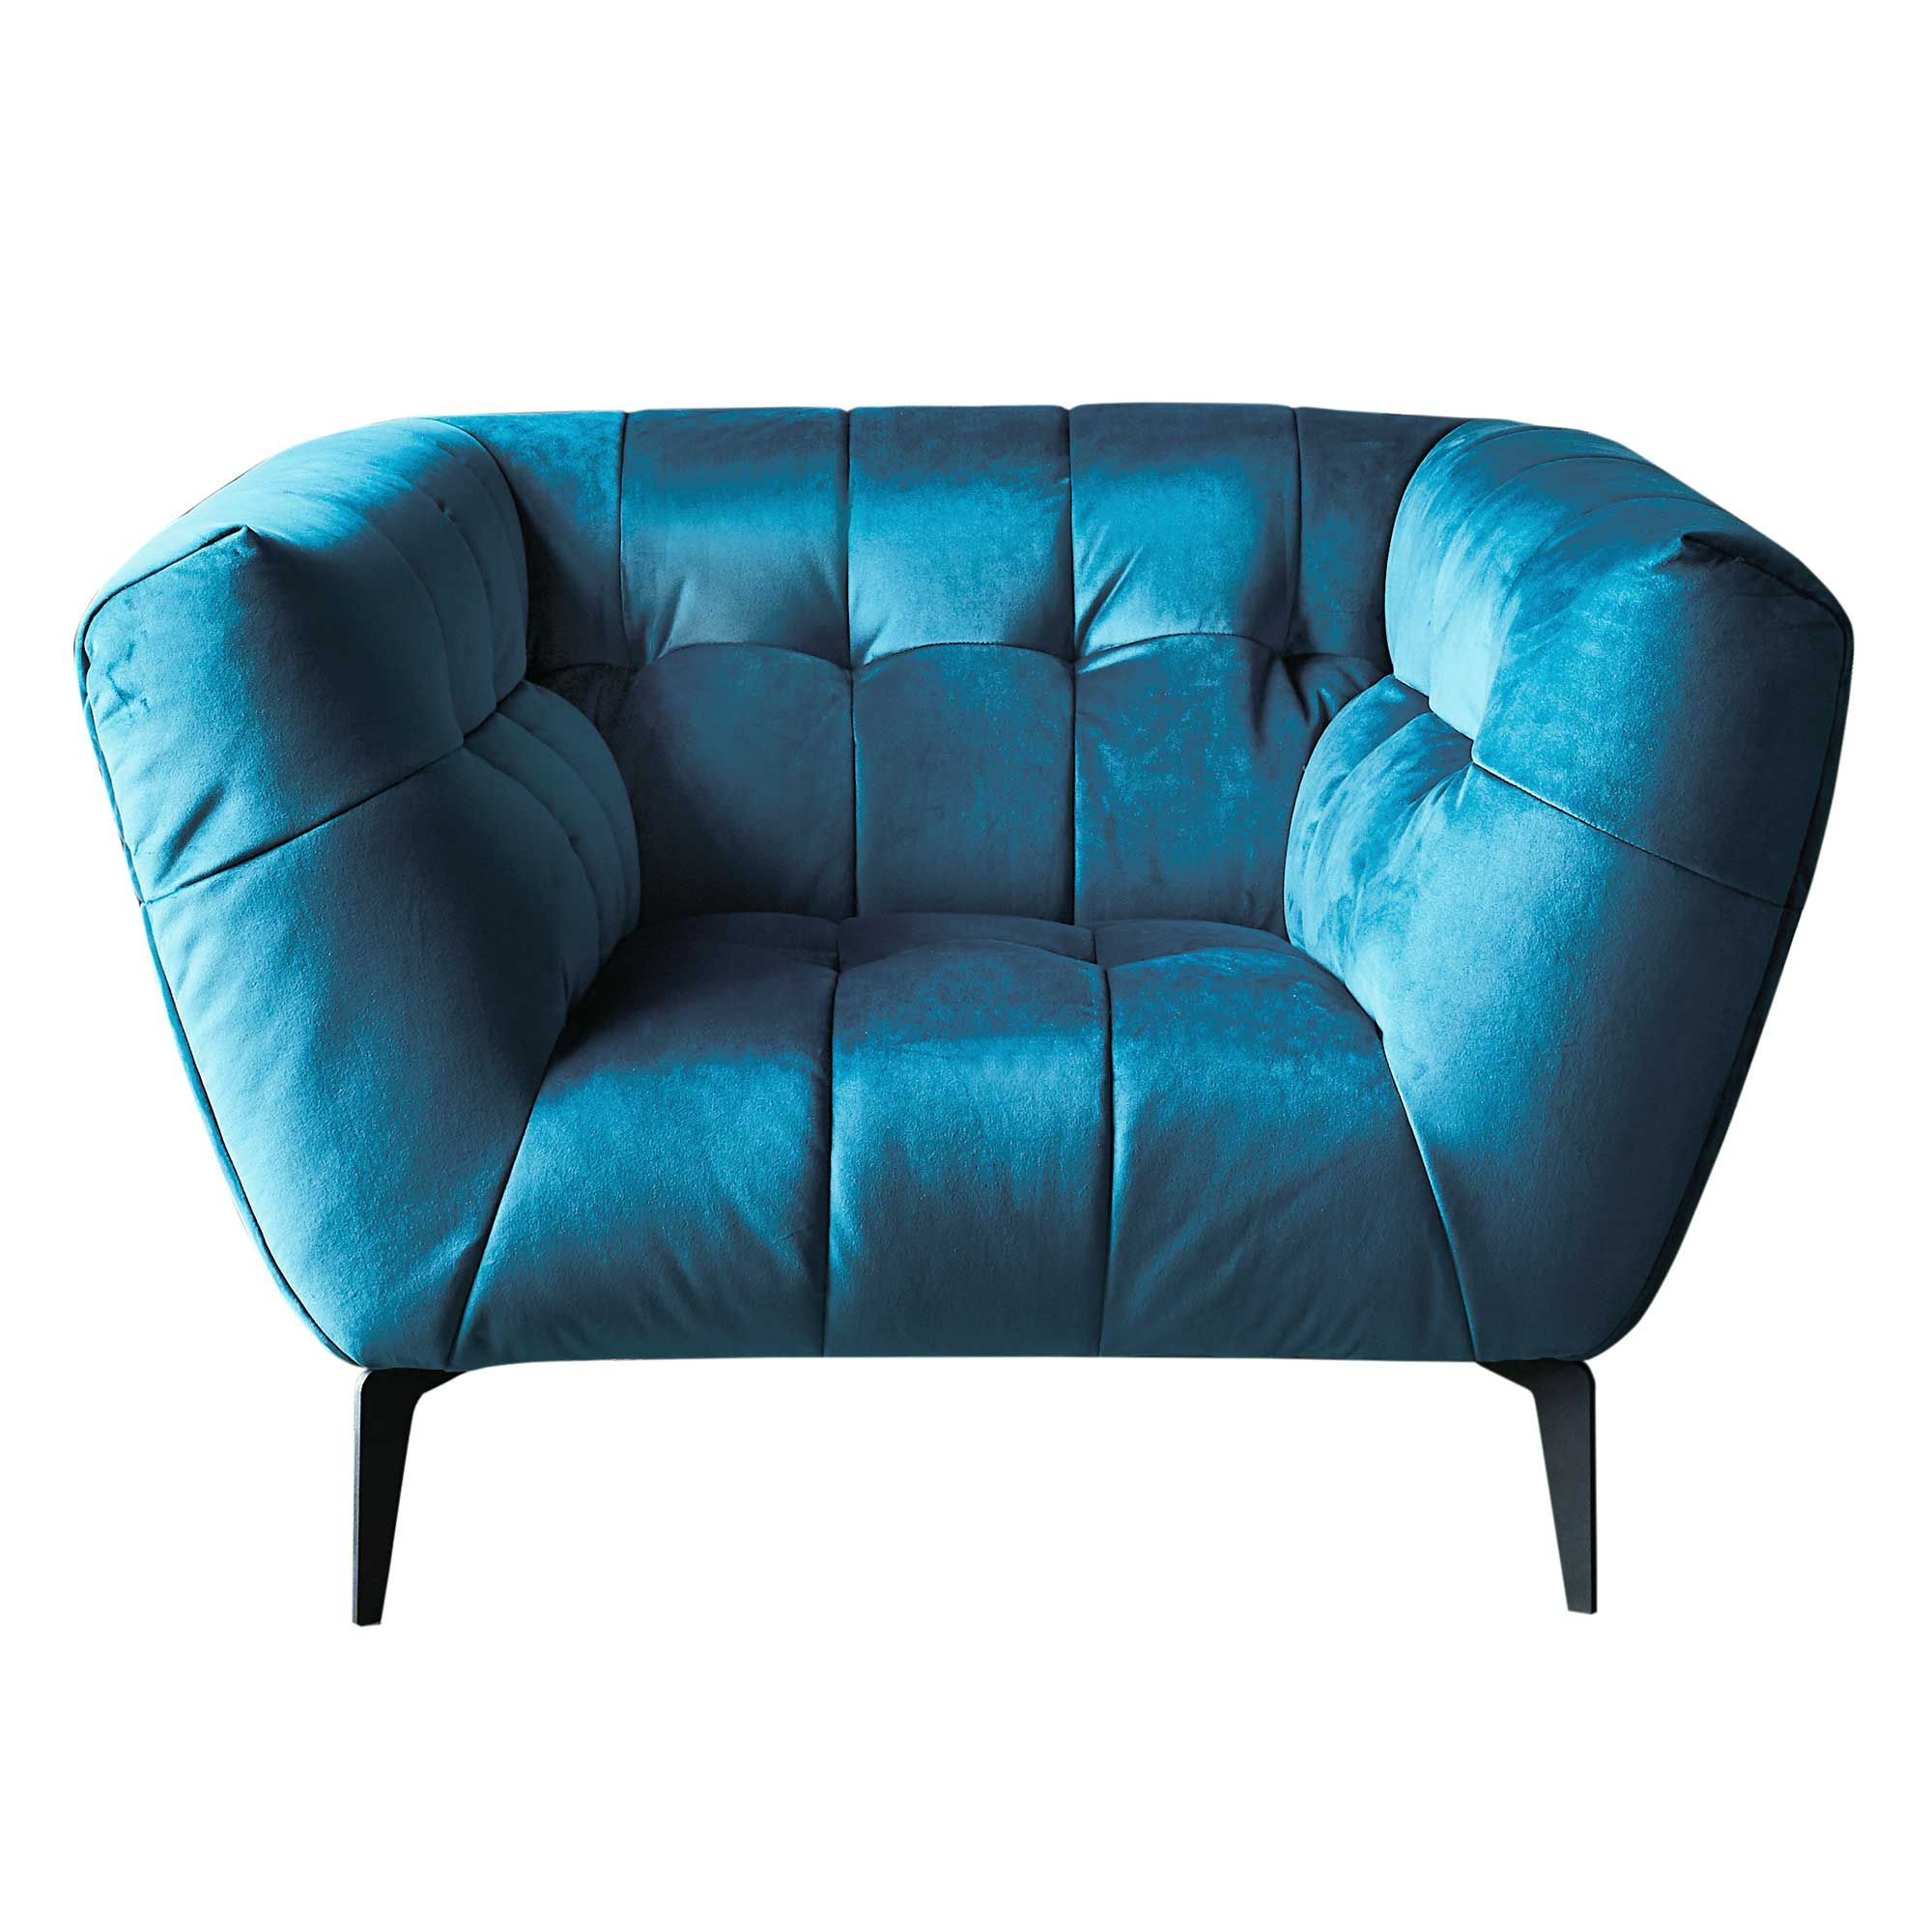 Azalea Chair   Chairs   Living Room is part of Living Room Chairs Book - Azalea Chair  available online at Barker & Stonehouse  Browse our fabulous range today!